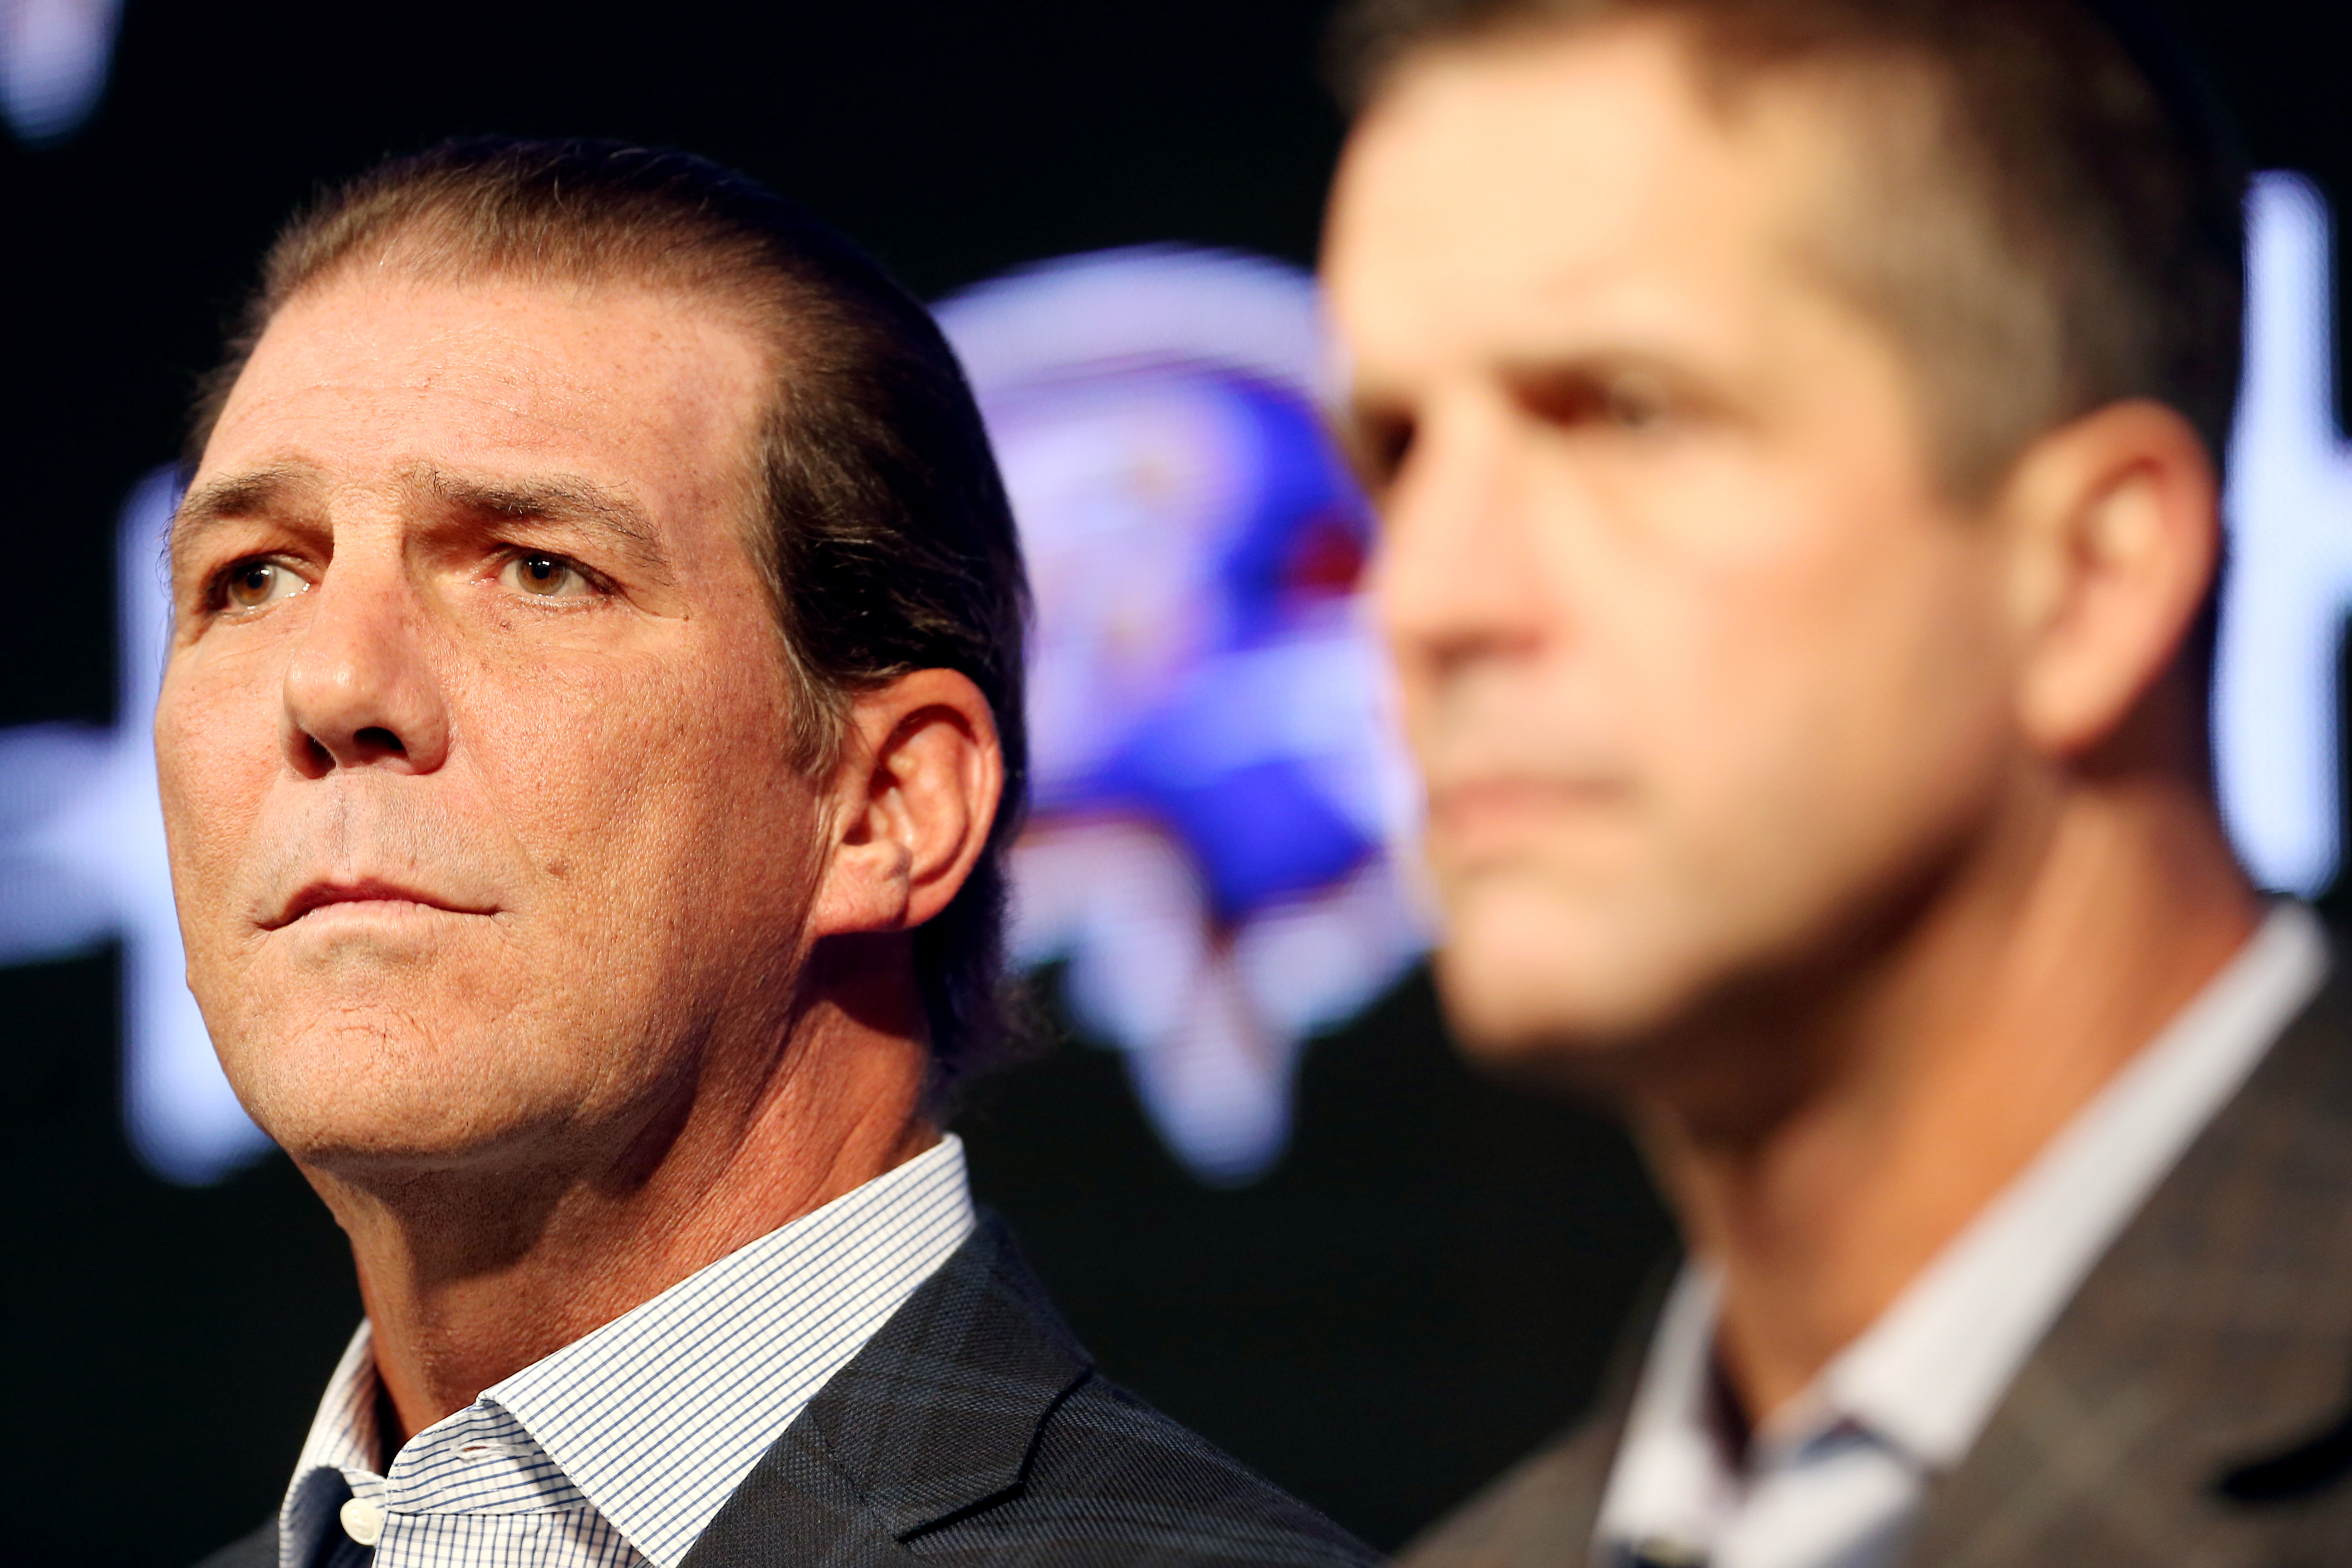 Baltimore Ravens owner Steve Bisciotti, left, listens to a reporter's question as he sits next to head coach John Harbaugh during an NFL football news conference at the team's practice facility in Owings Mills, Md., Thursday, Jan. 7, 2016. The team held t